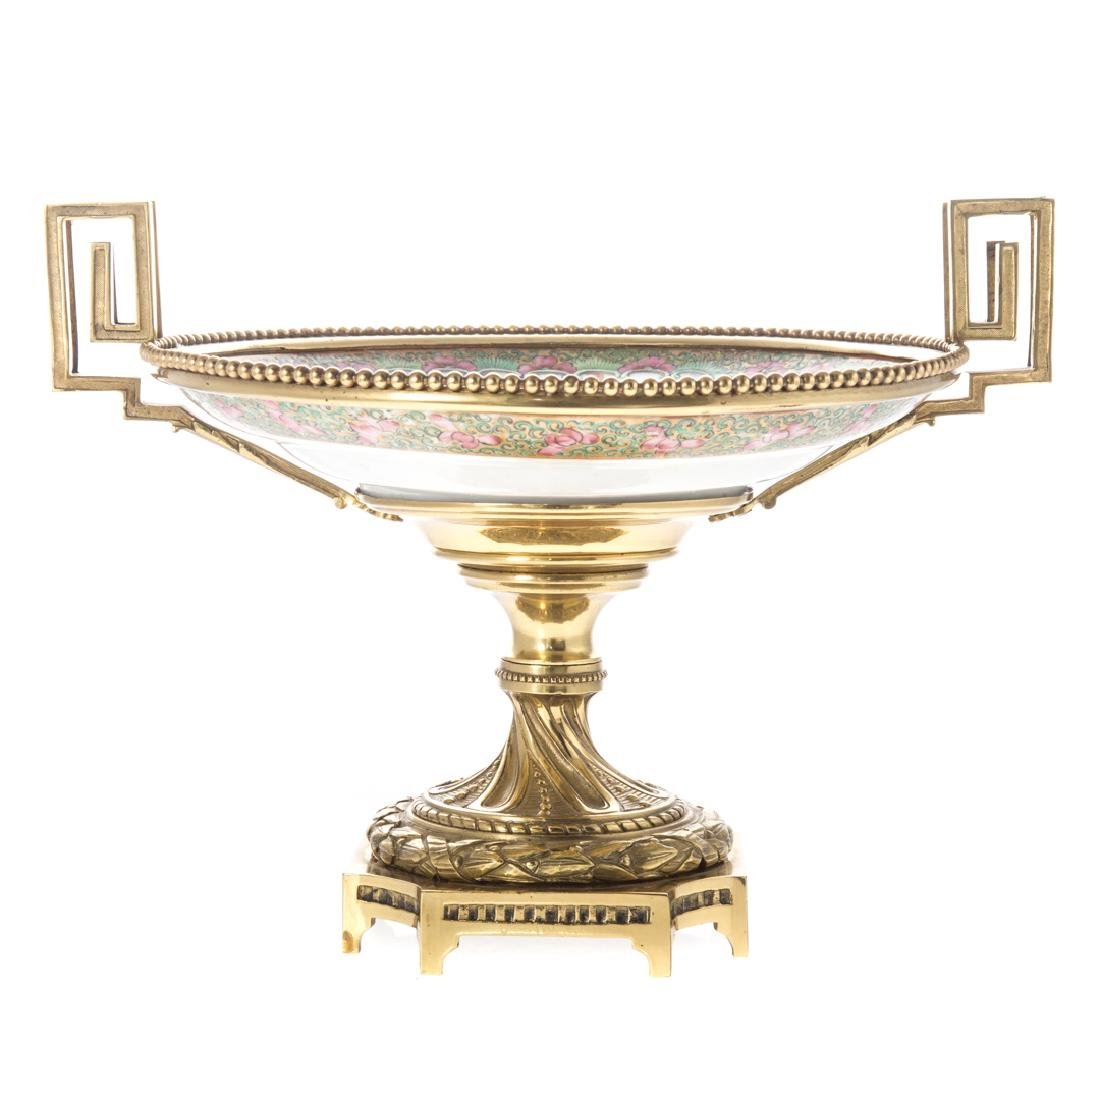 Chinese Export porcelain & brass compote